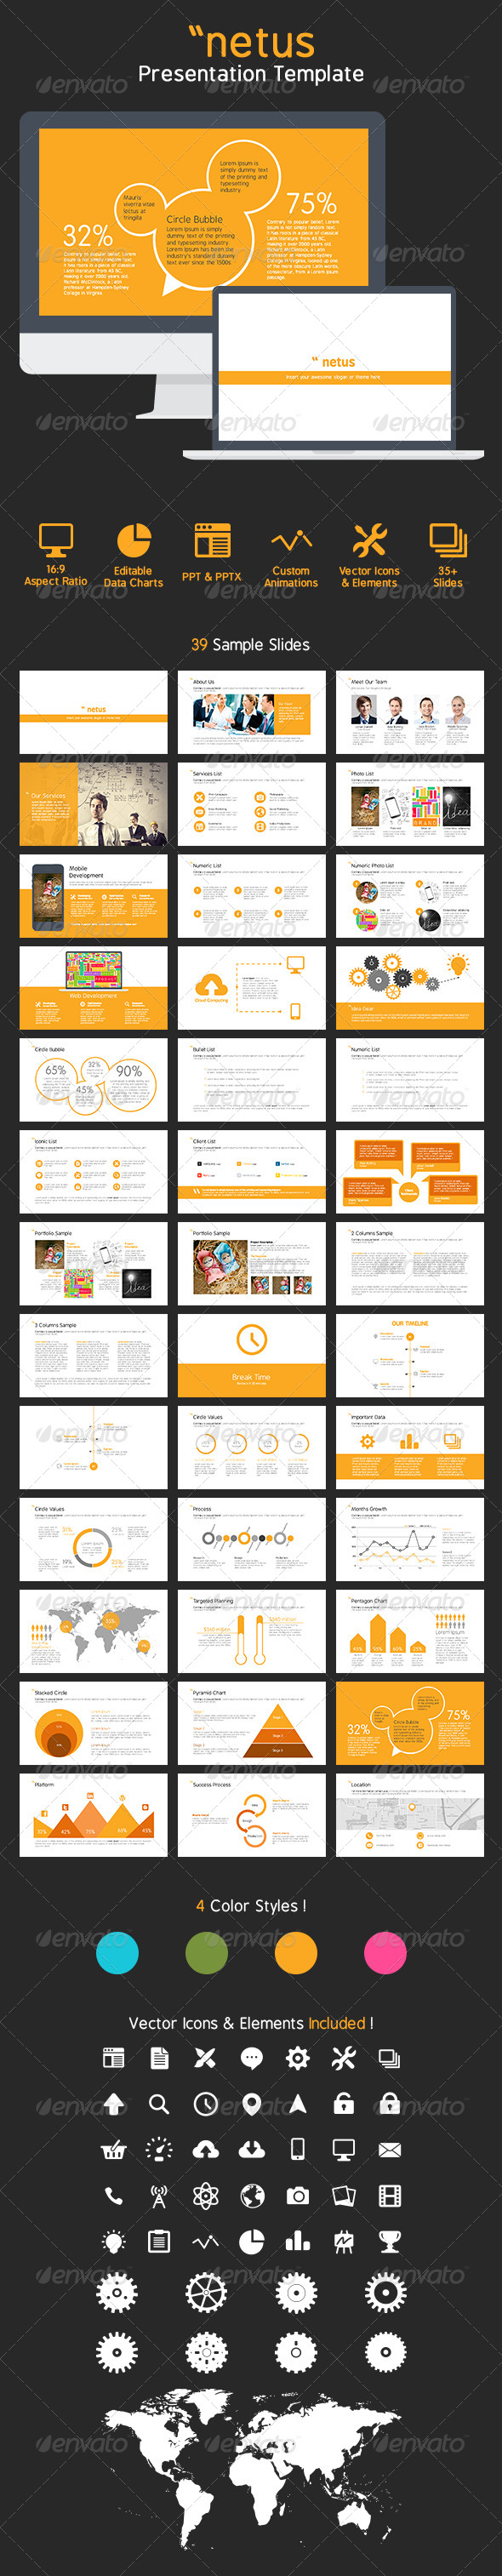 GraphicRiver netus PowerPoint Presentation Templates 7169196